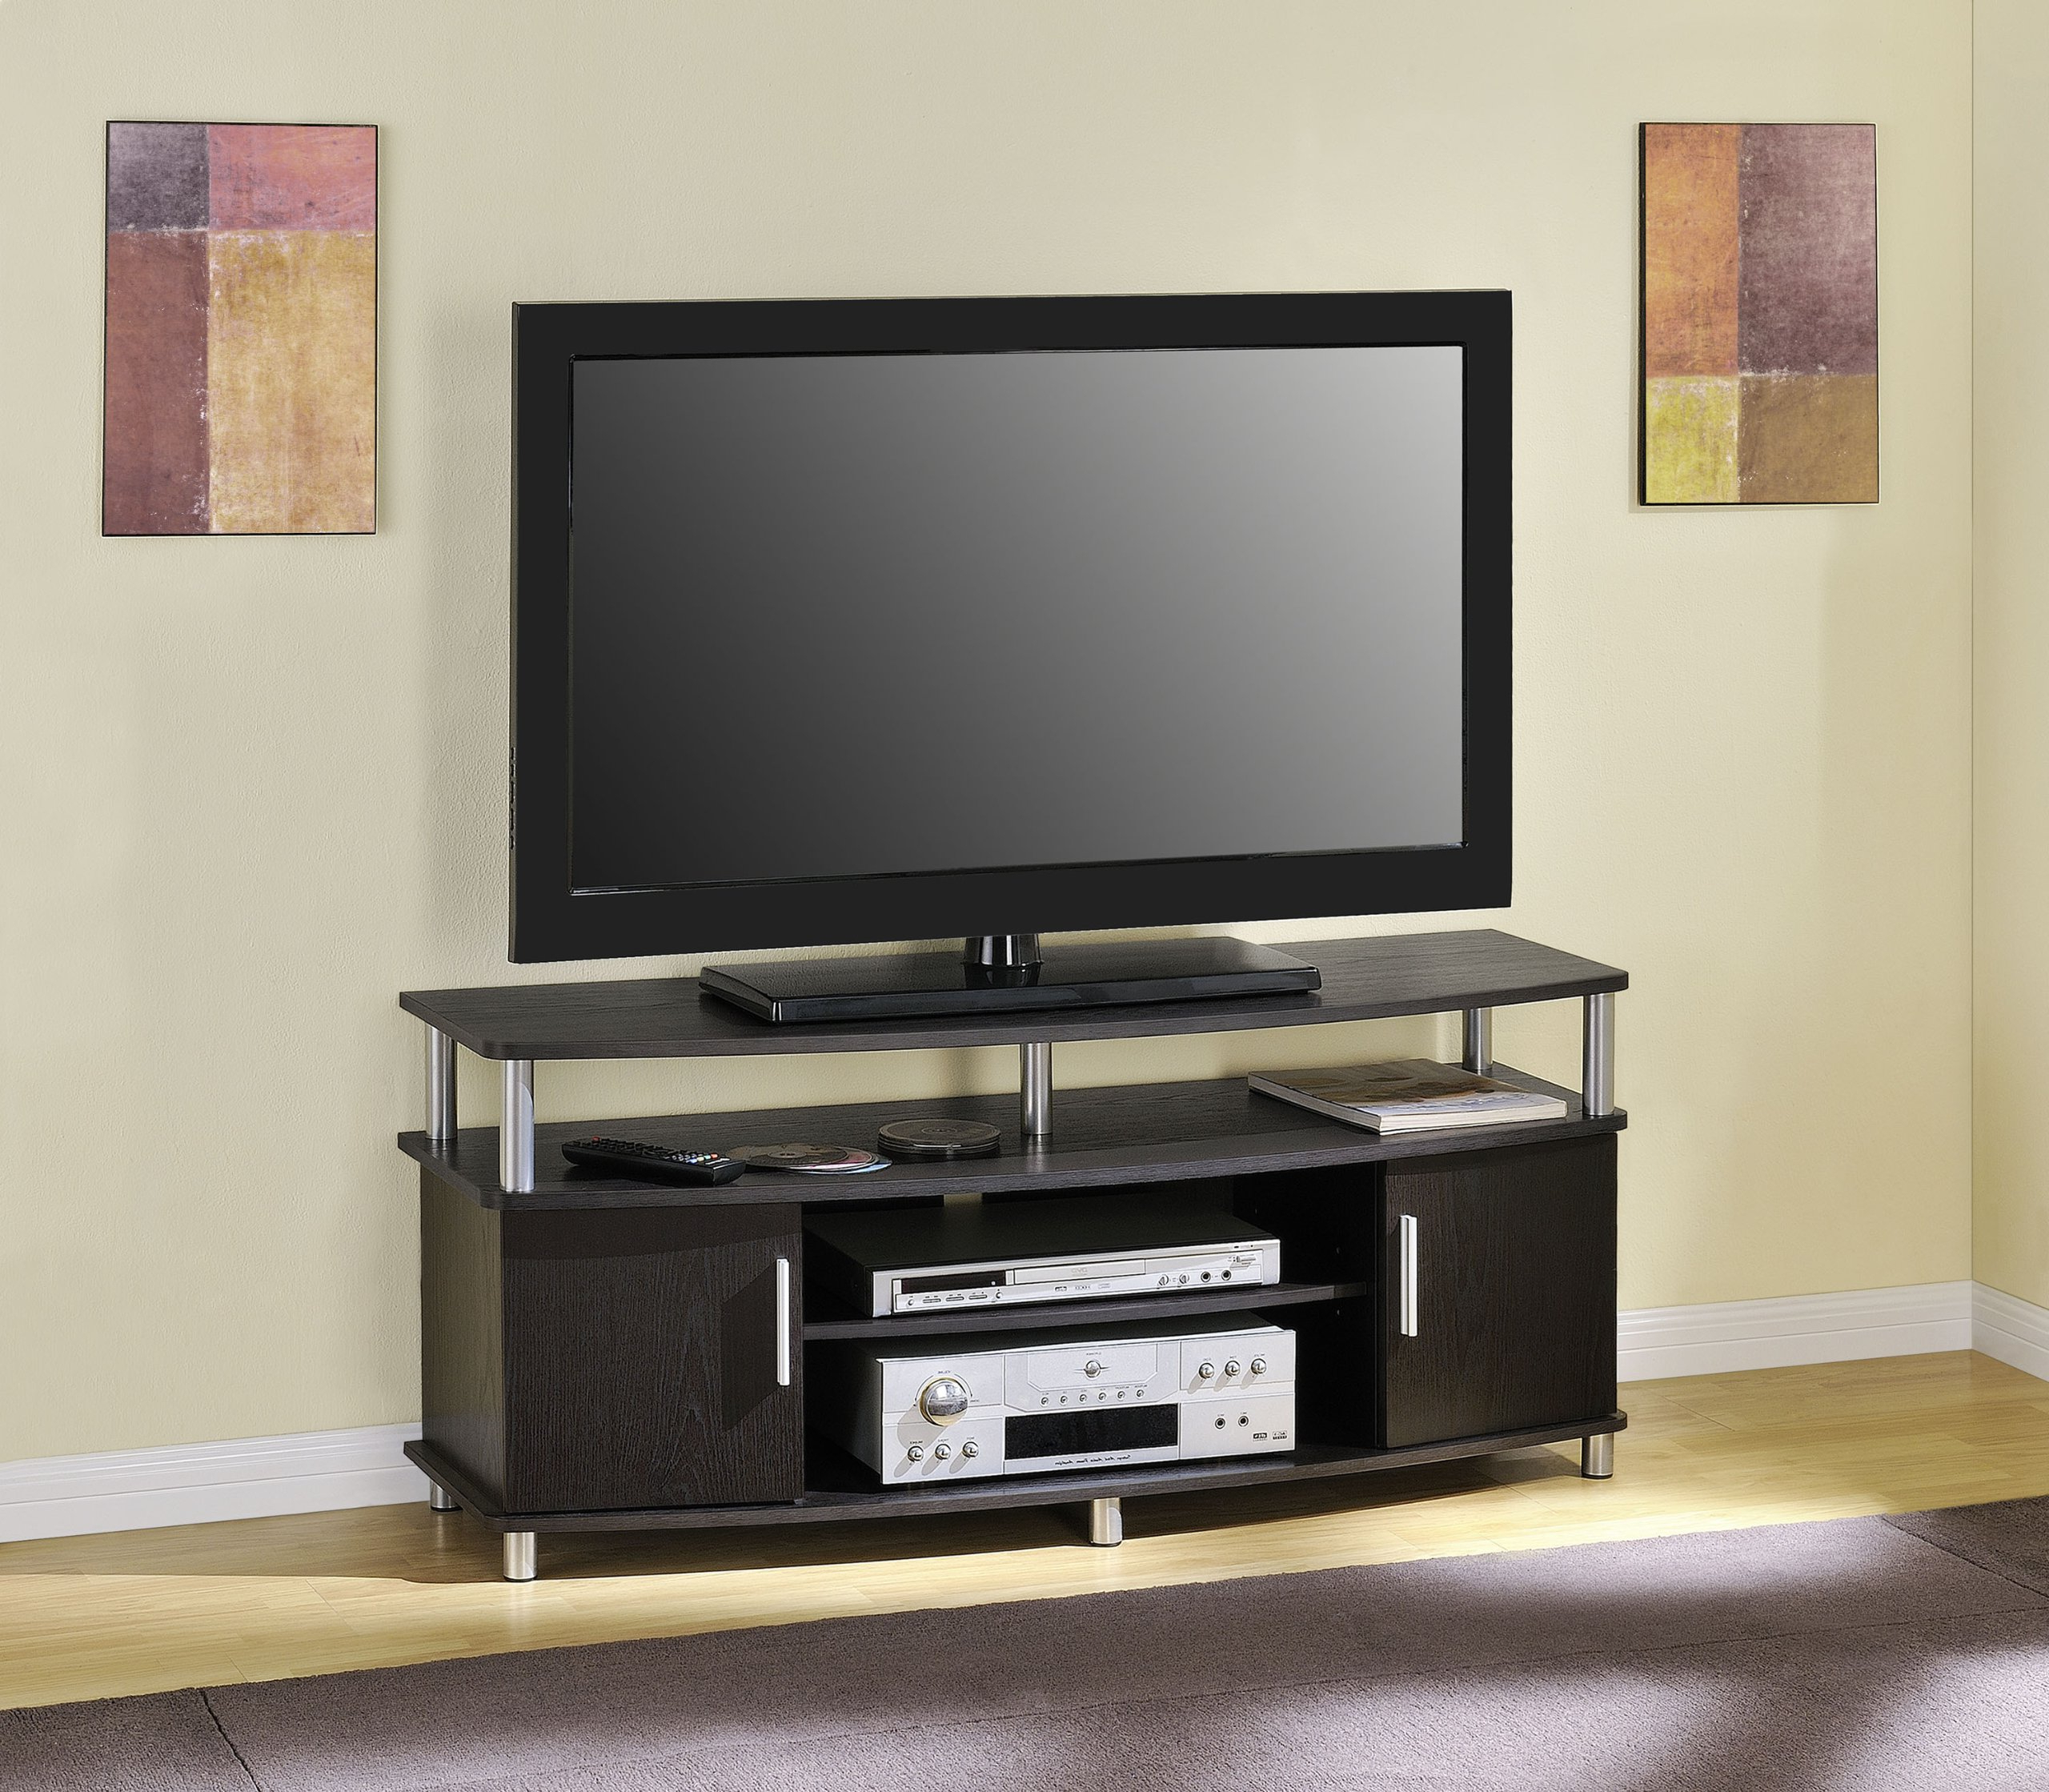 40 Inch Corner Tv Stands Throughout Preferred Best Buy Tv Stands With Mount Stand Walmart Tall Corner Kmart For (View 19 of 20)